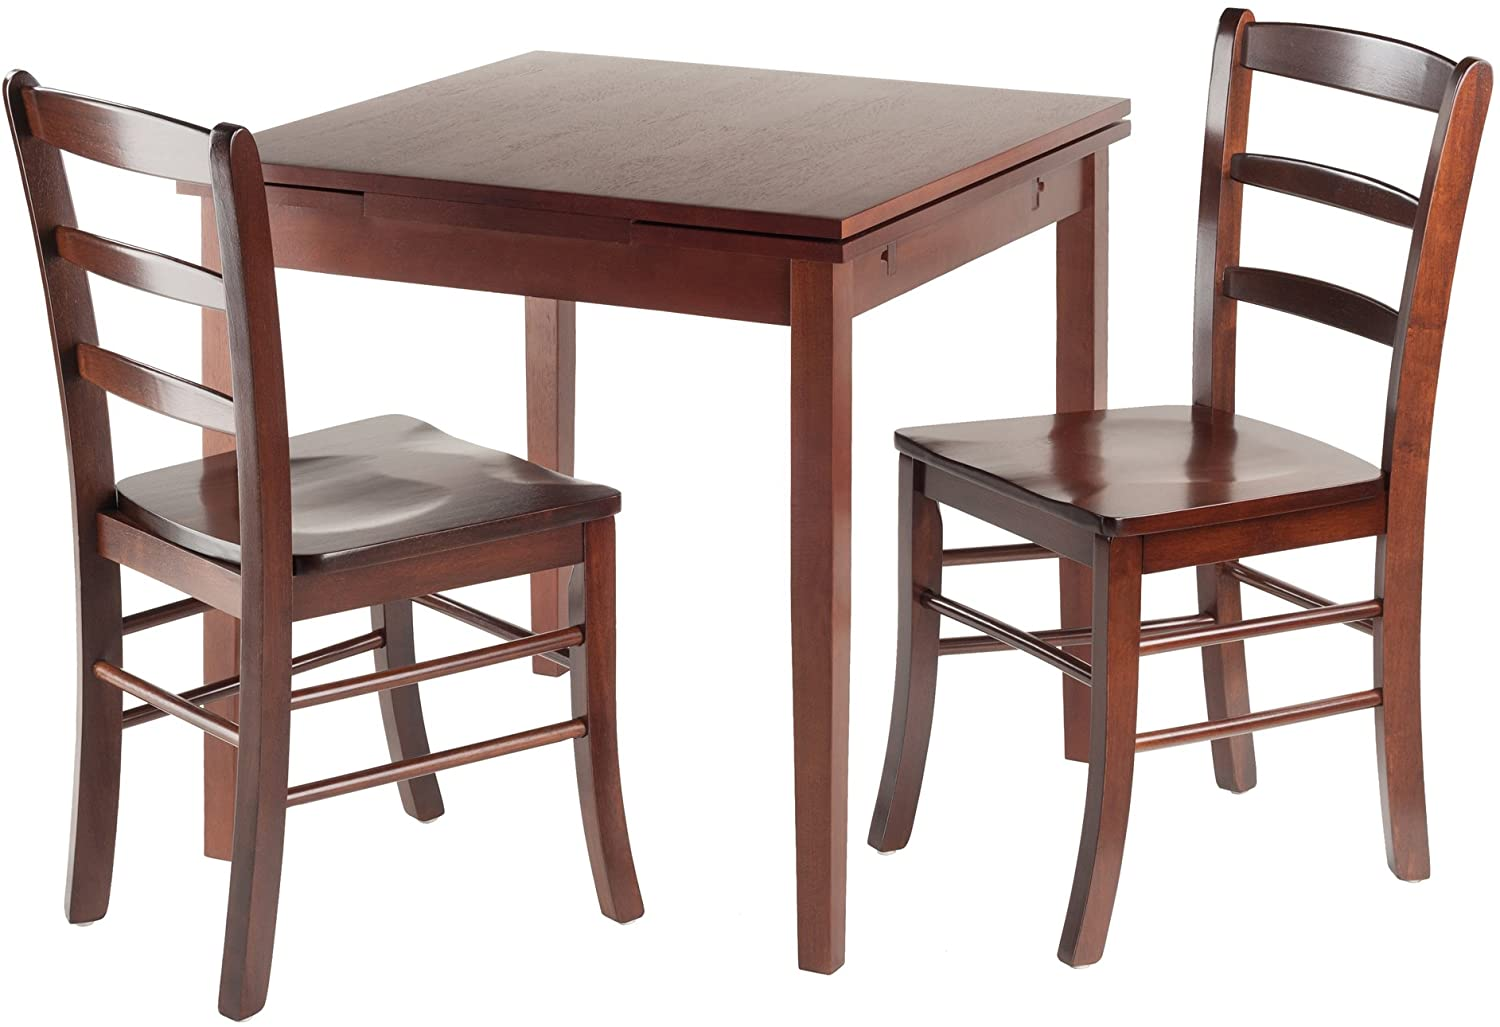 Winsome Wood Pulman 3 Piece Set Extension Table 2 Ladder Back Chairs